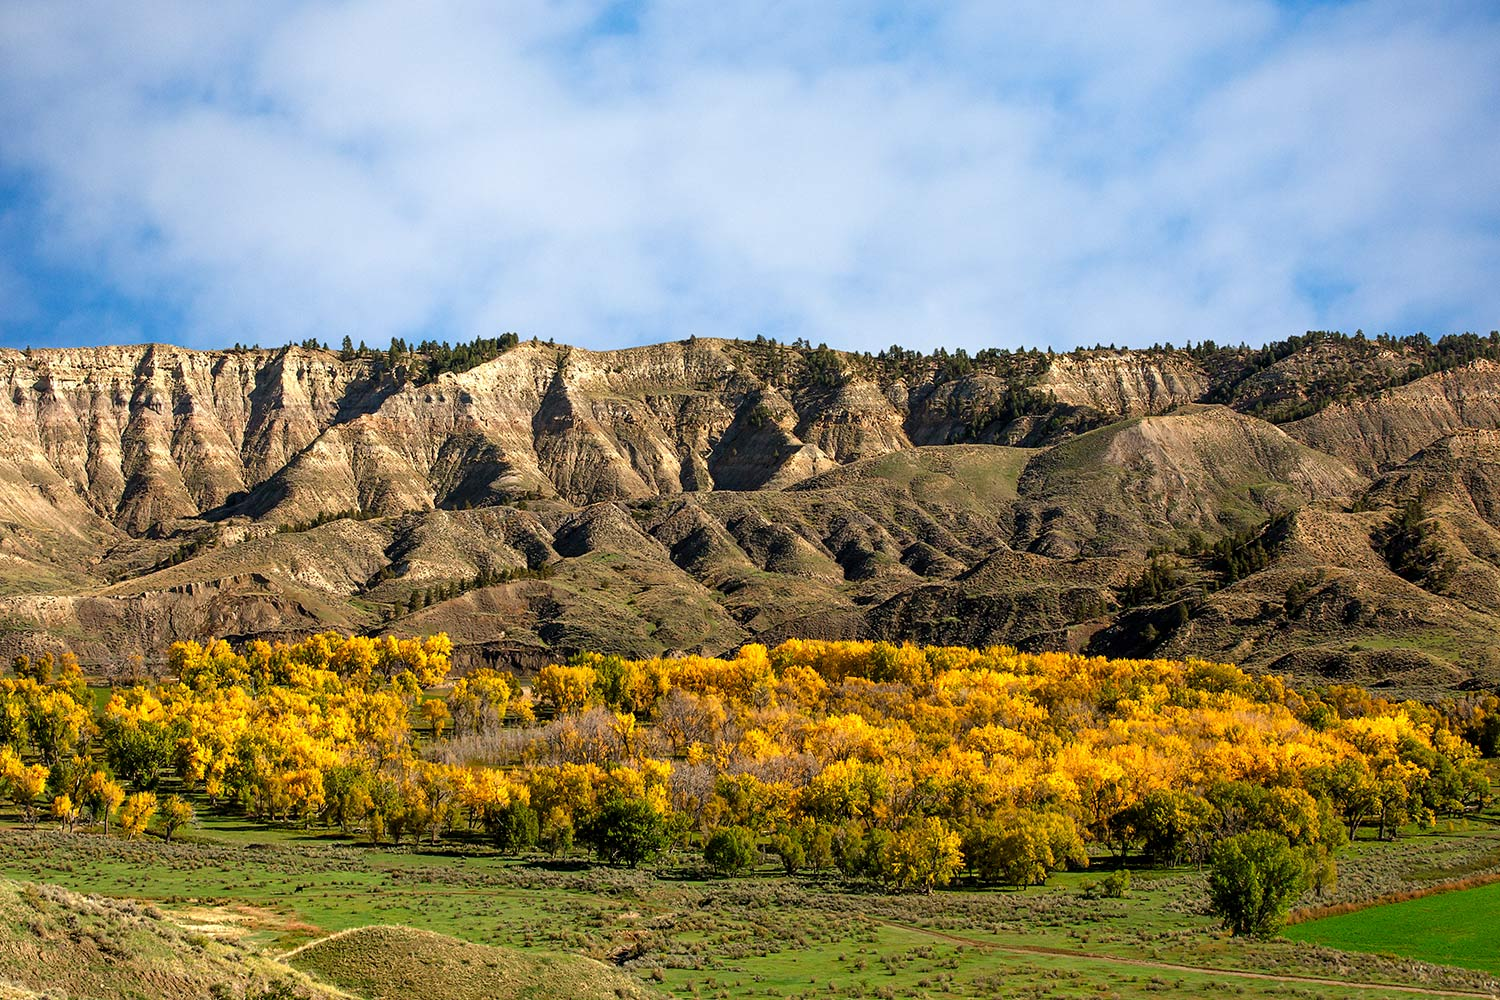 Cottonwood trees turn a beautiful hue of yellow and orange in the Judith River valley outside of Winifred, Montana.  → Buy a Print    or   License Photo